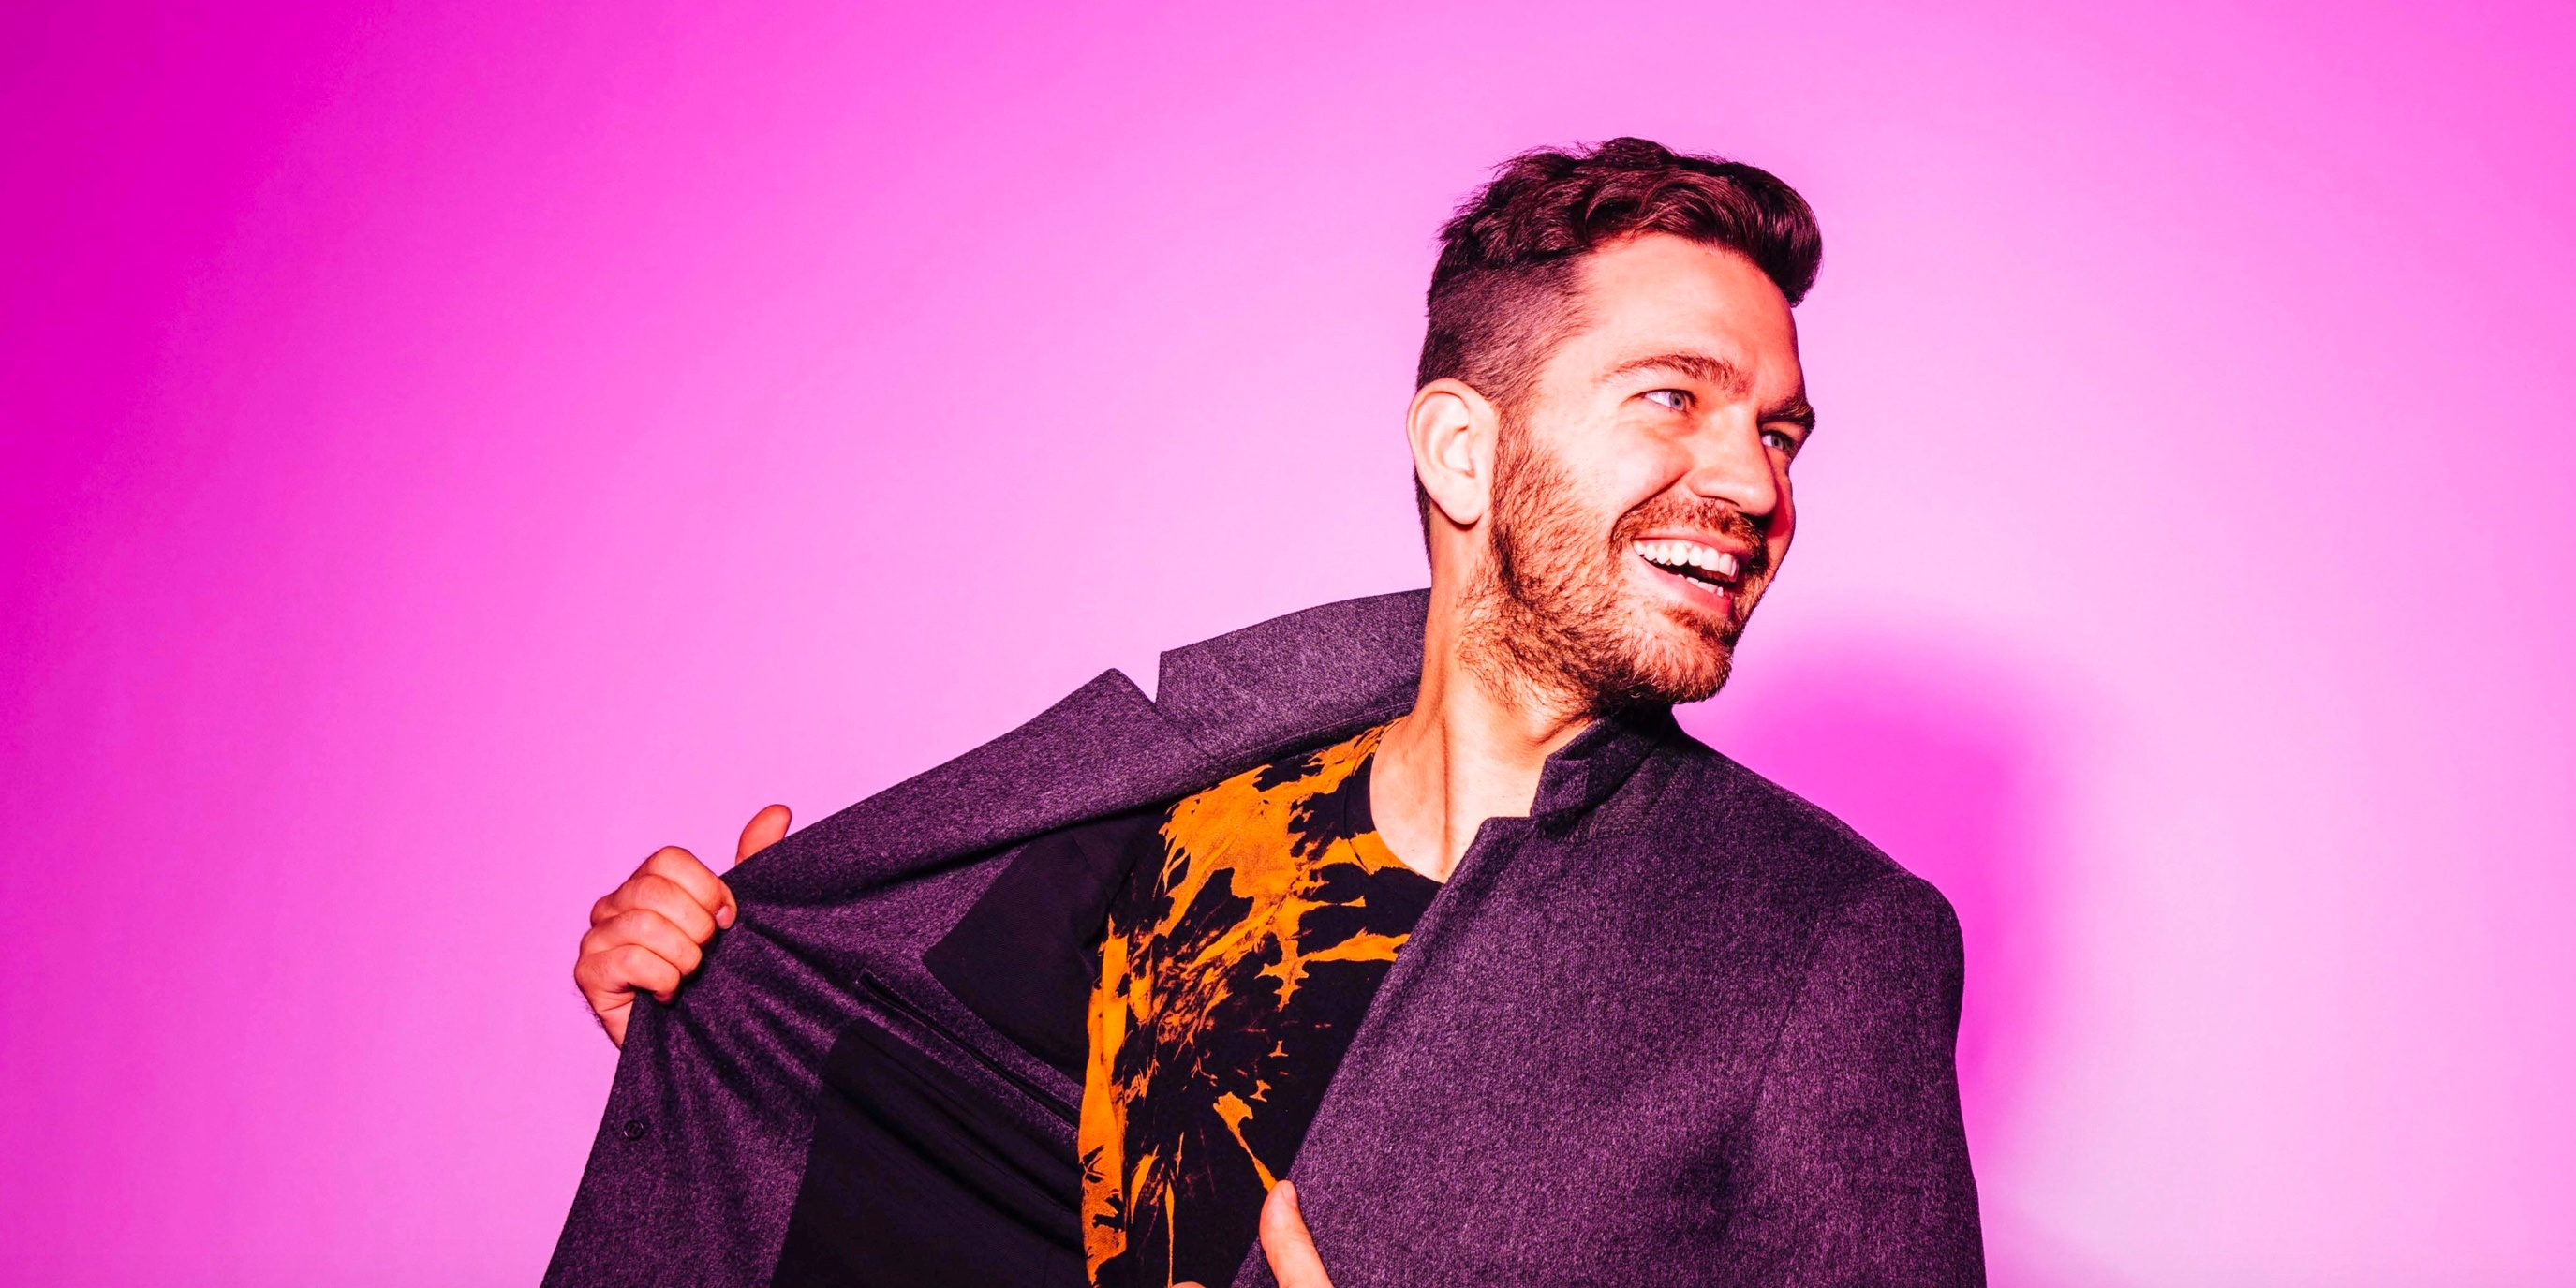 American pop artist Andy Grammer is coming to Manila